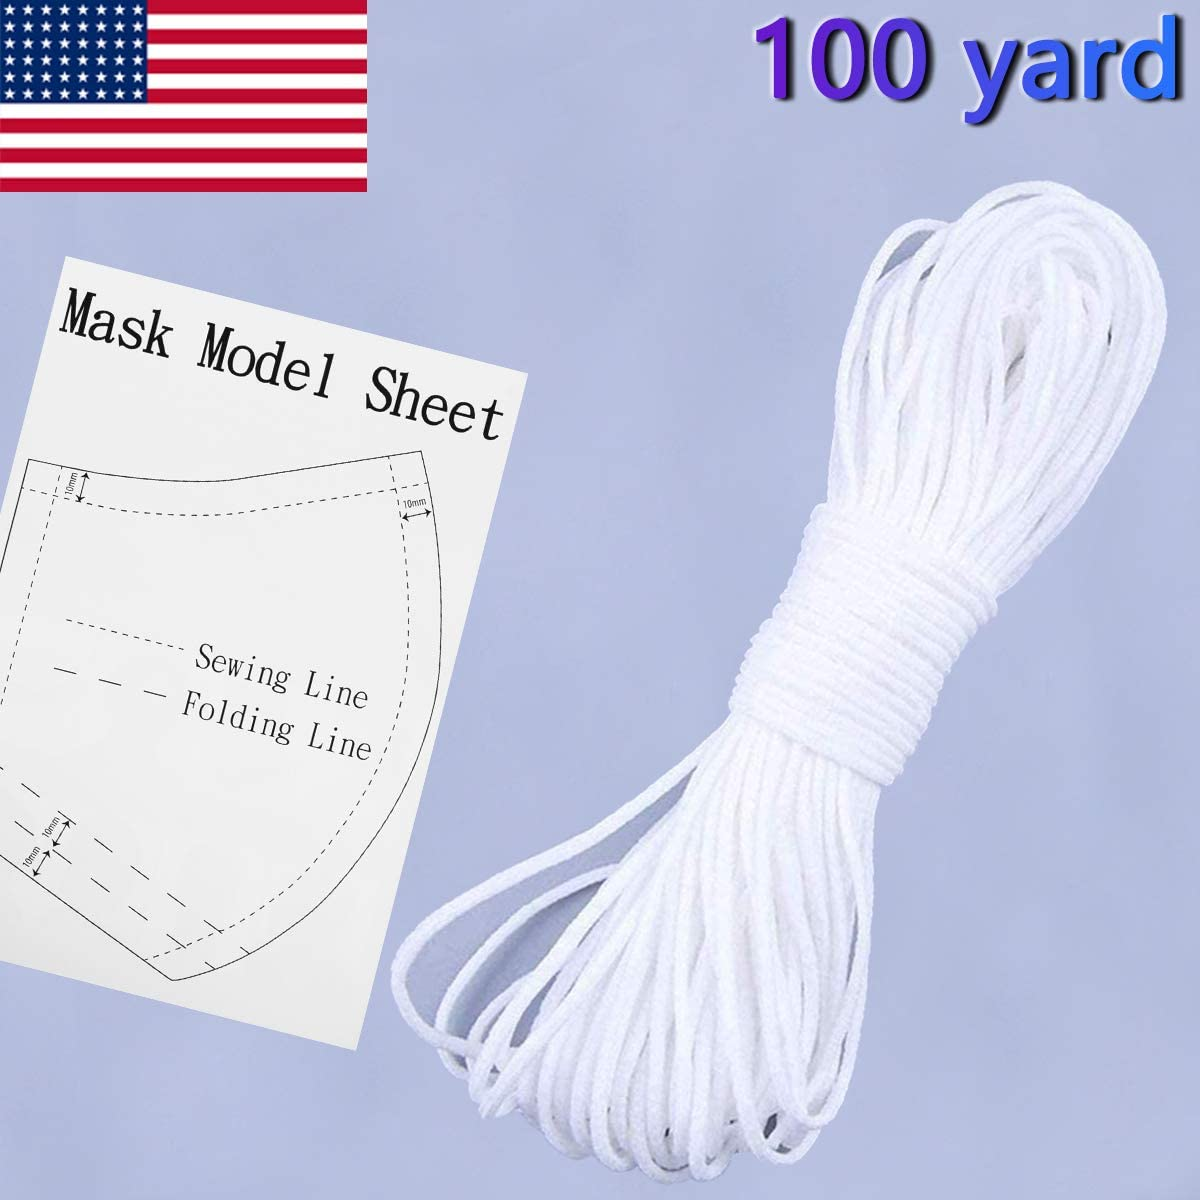 Securing Holder Earloop Band Stretchy Trim Elastic Cord for Face Masks Rope Handmade DIY Elastic String for Sewing Masks 1//8 inch White Round Thin Drawstring Braided -100 Yard